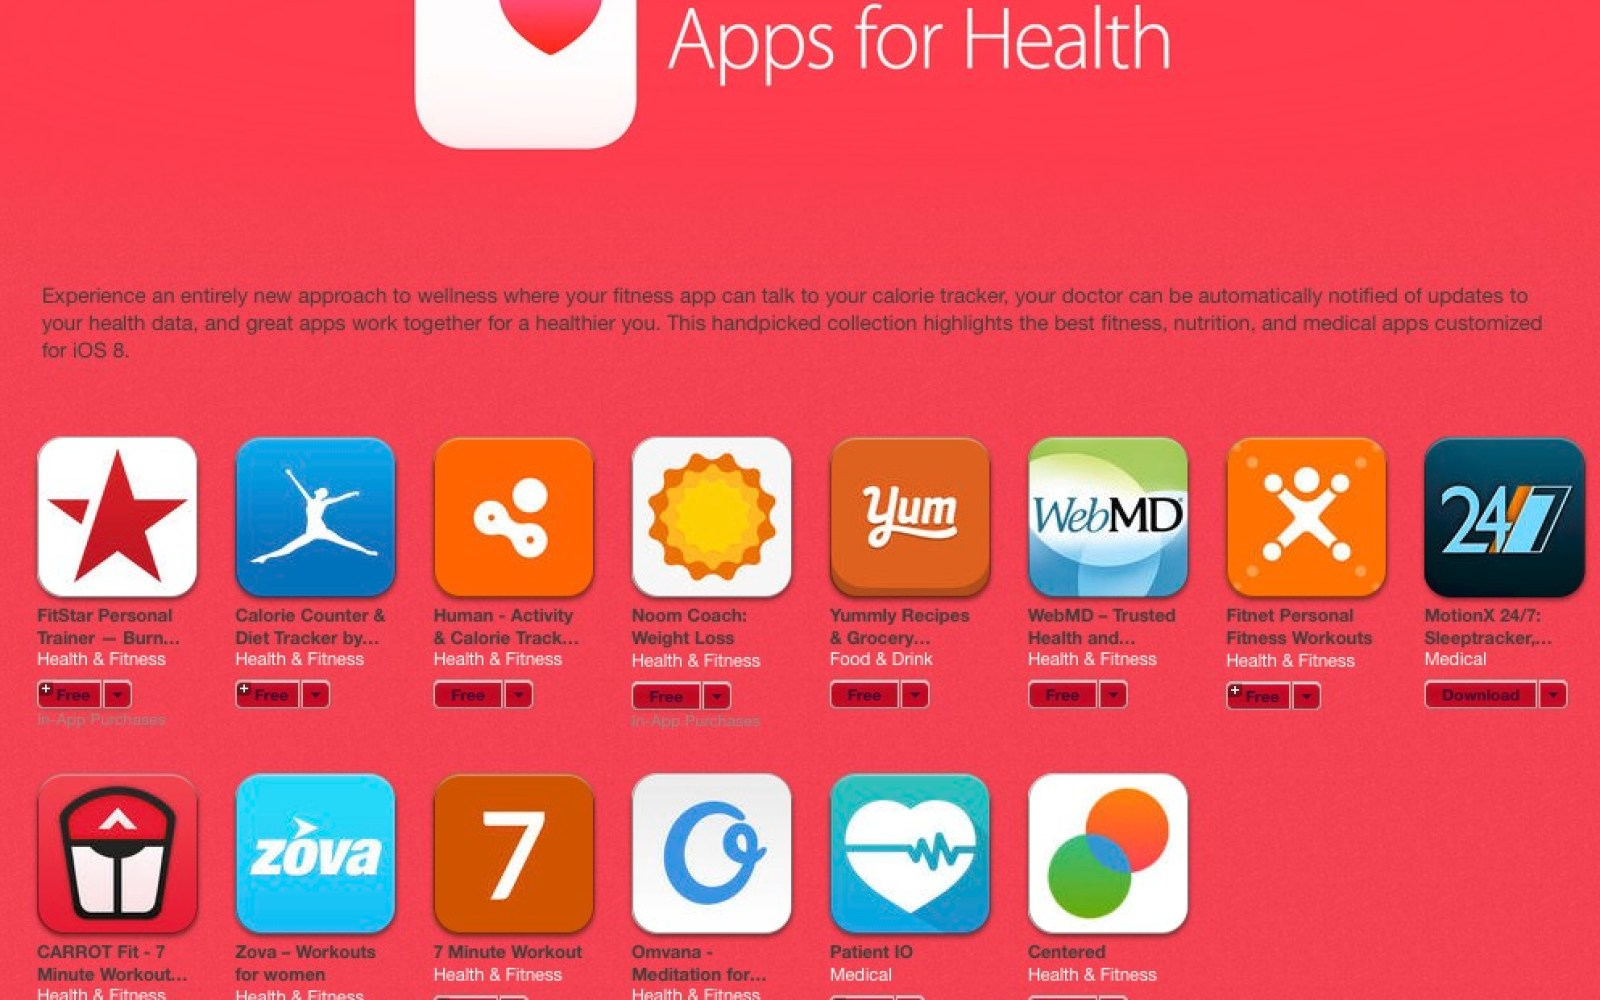 'Apps for Health' section hits App Store following Apple's release of Healthkit enabled iOS 8.0.2